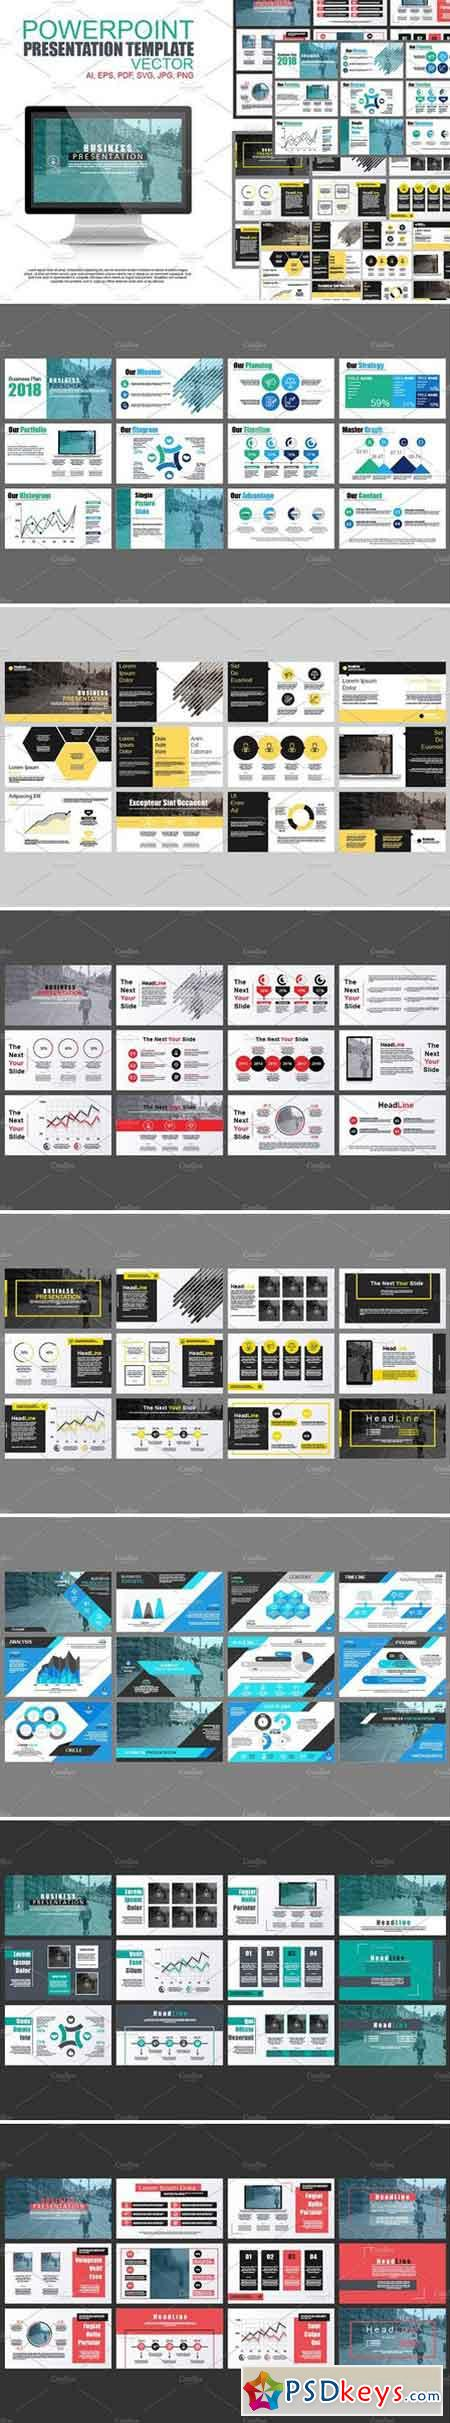 Powerpoint Presentation Templates 1883959